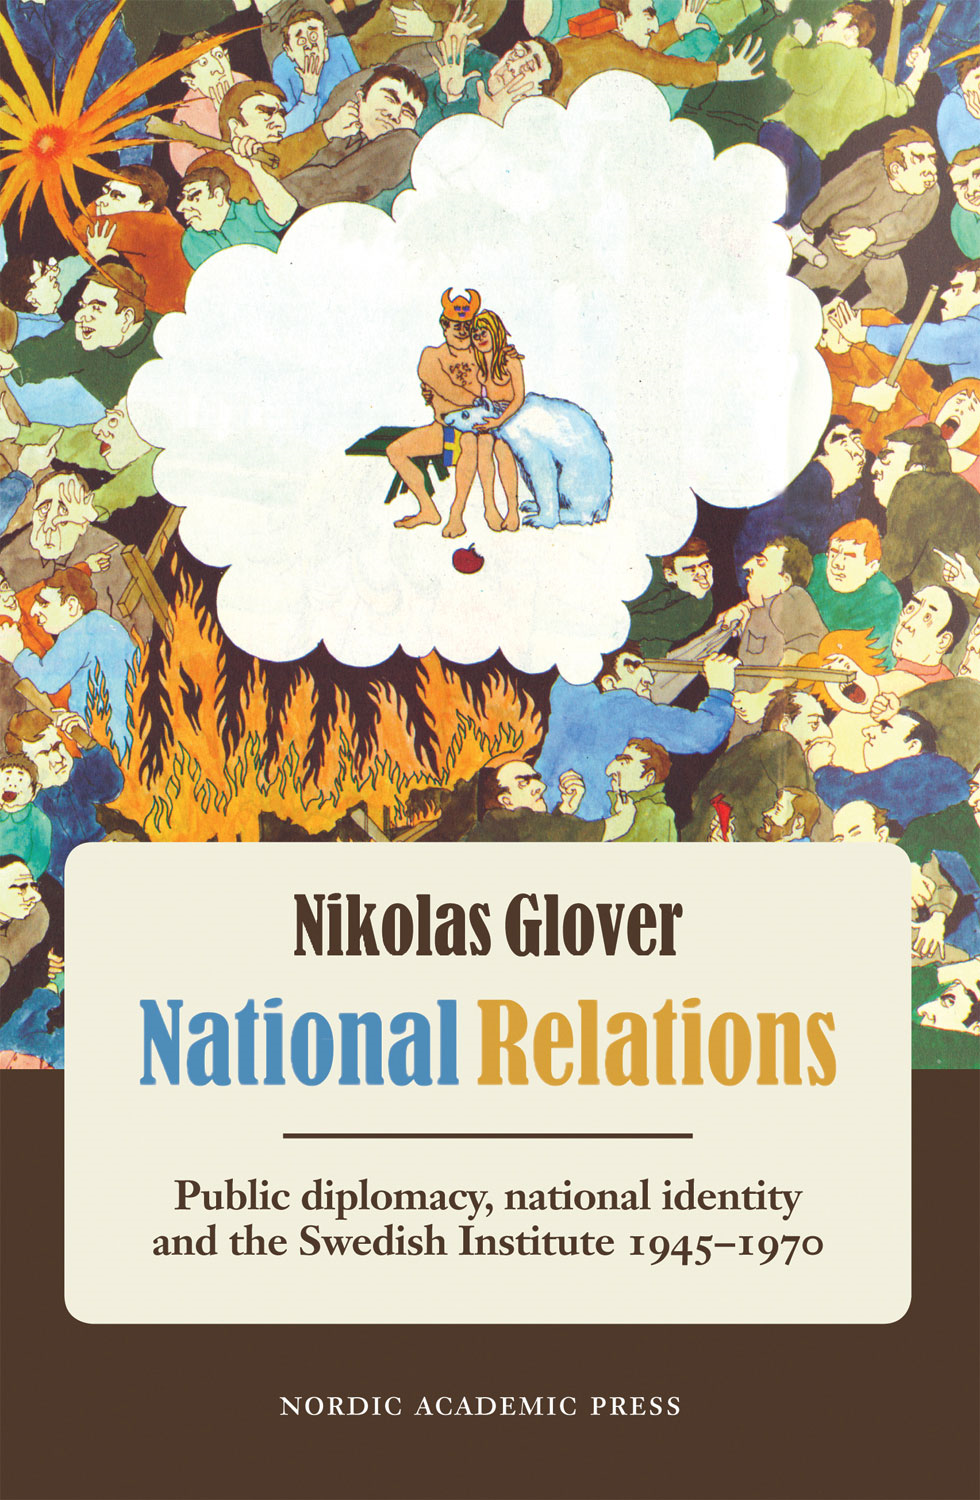 National Relations: Public Diplomacy, National Identity and the Swedish Institute 1945-1970 By: Nikolas Glover